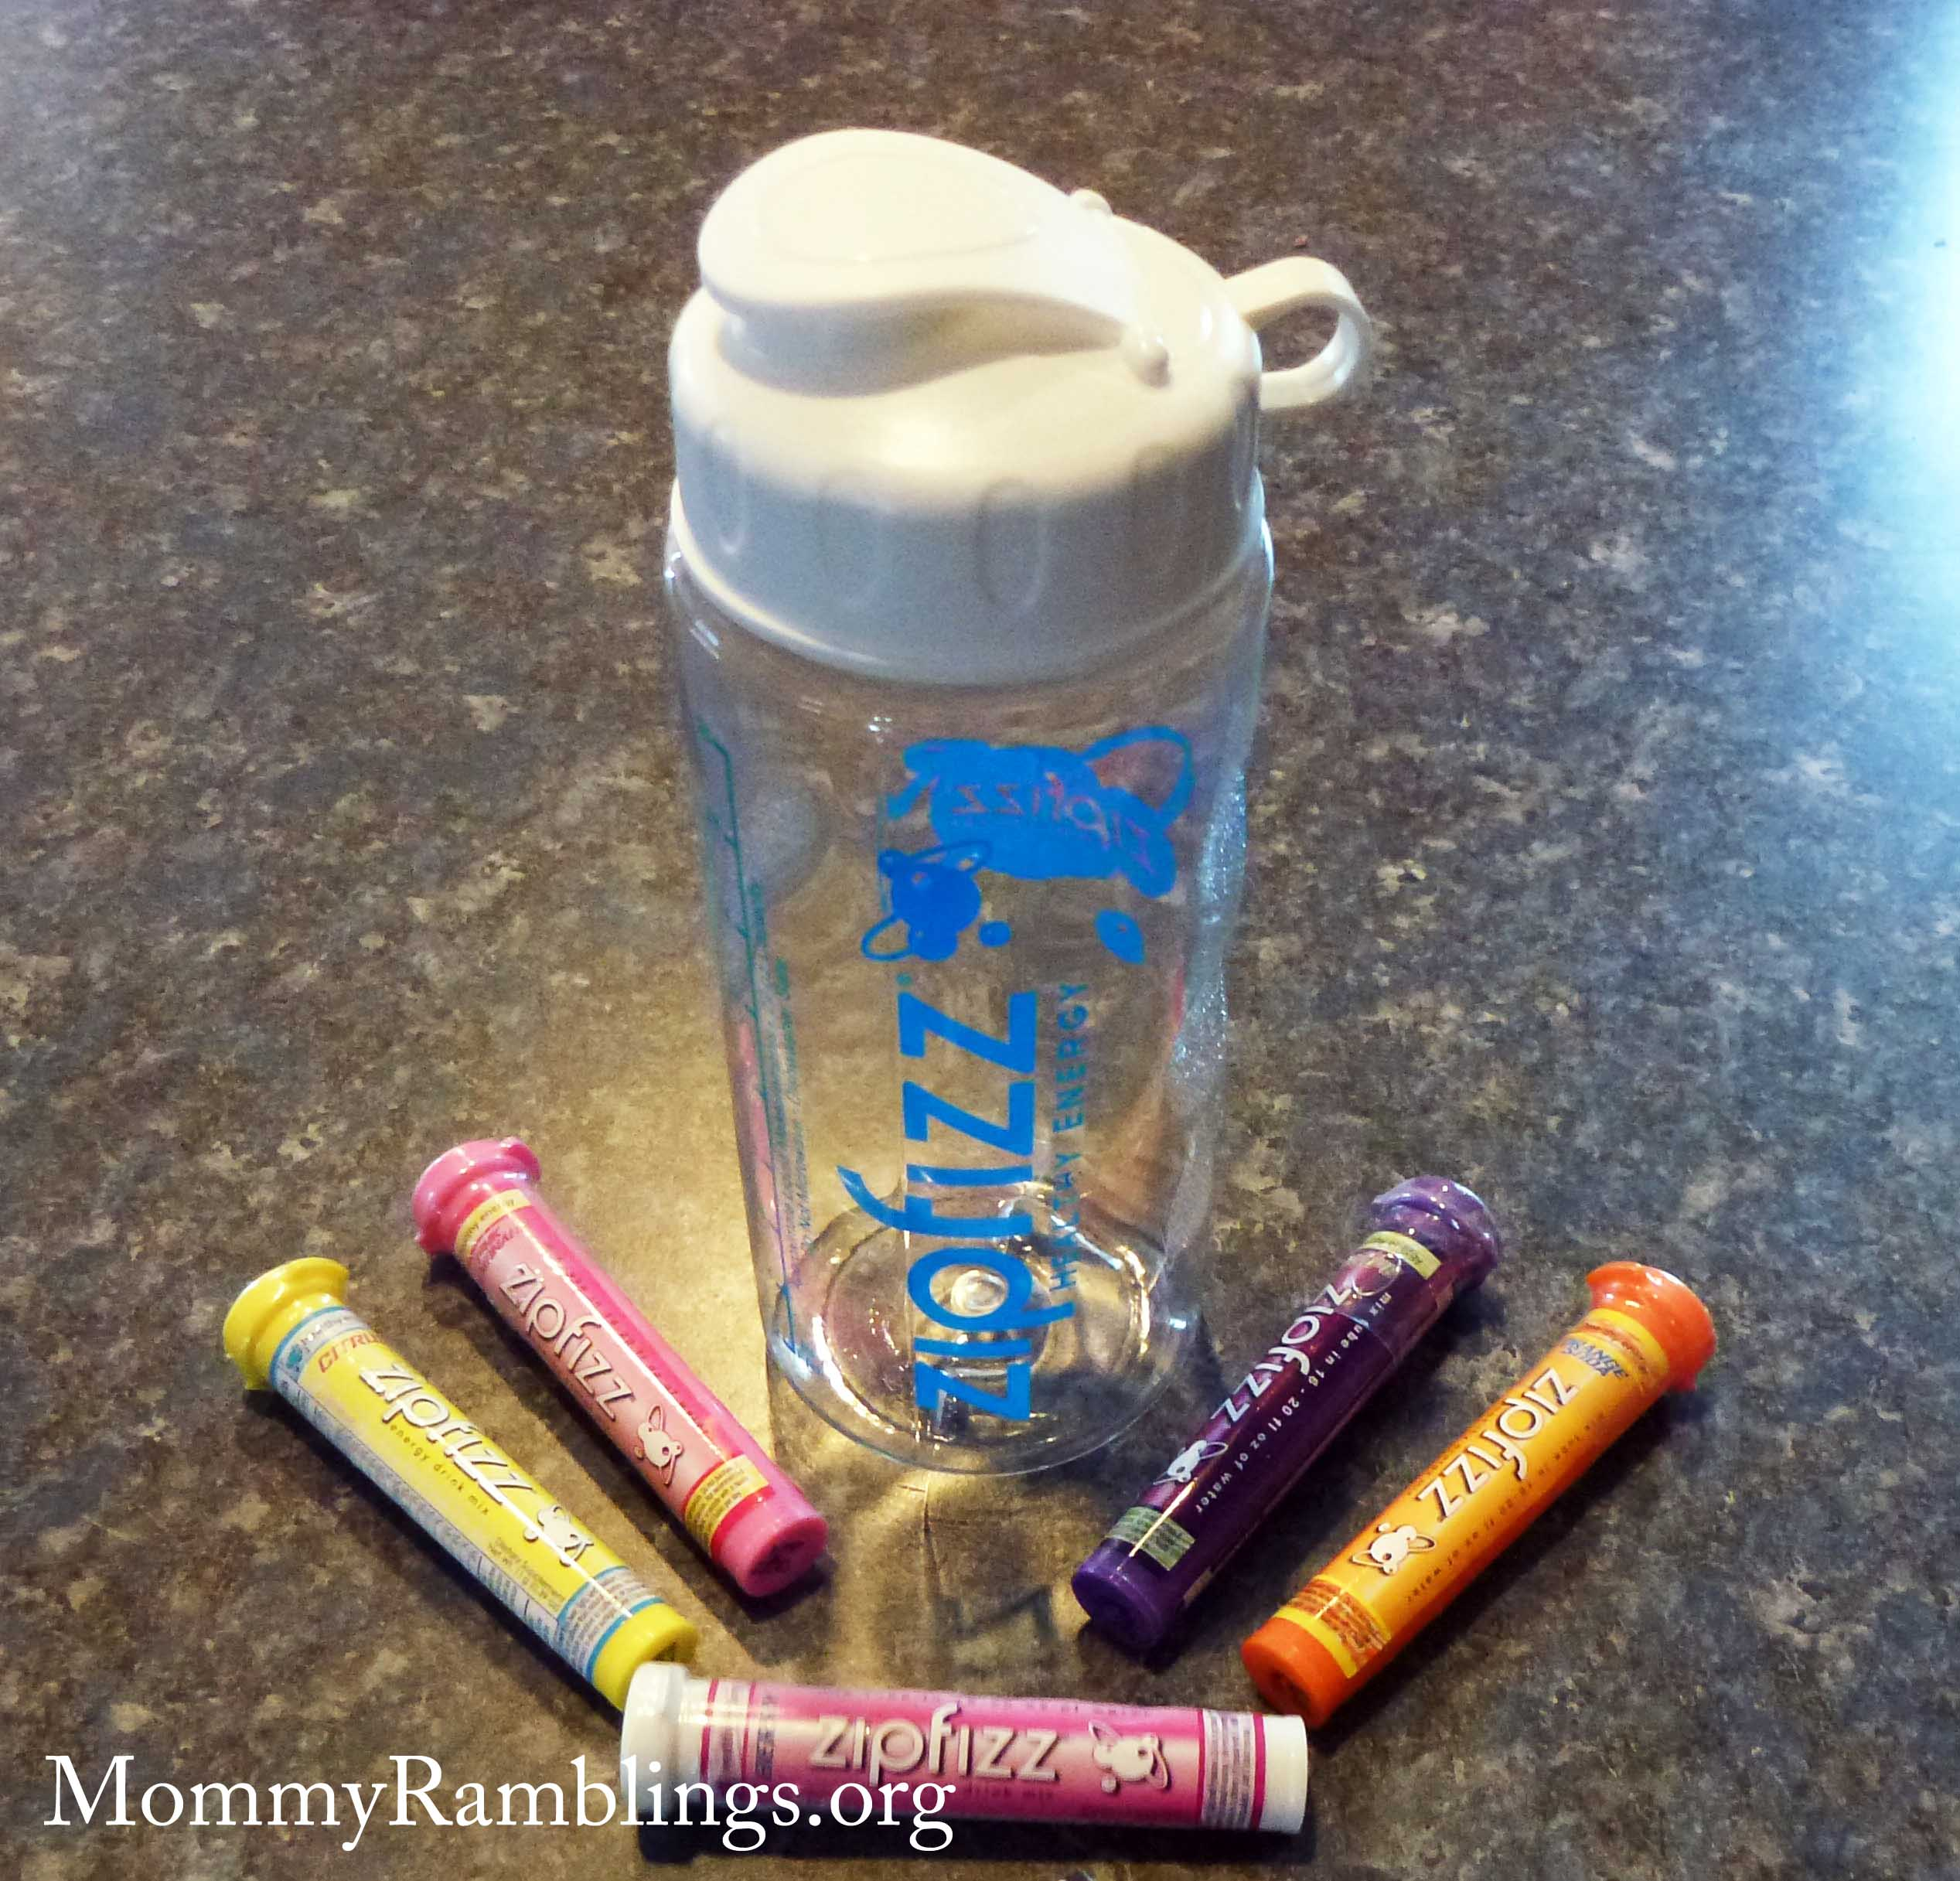 Zipfizz, Healthy Energy Mix 5 day Challenge Review